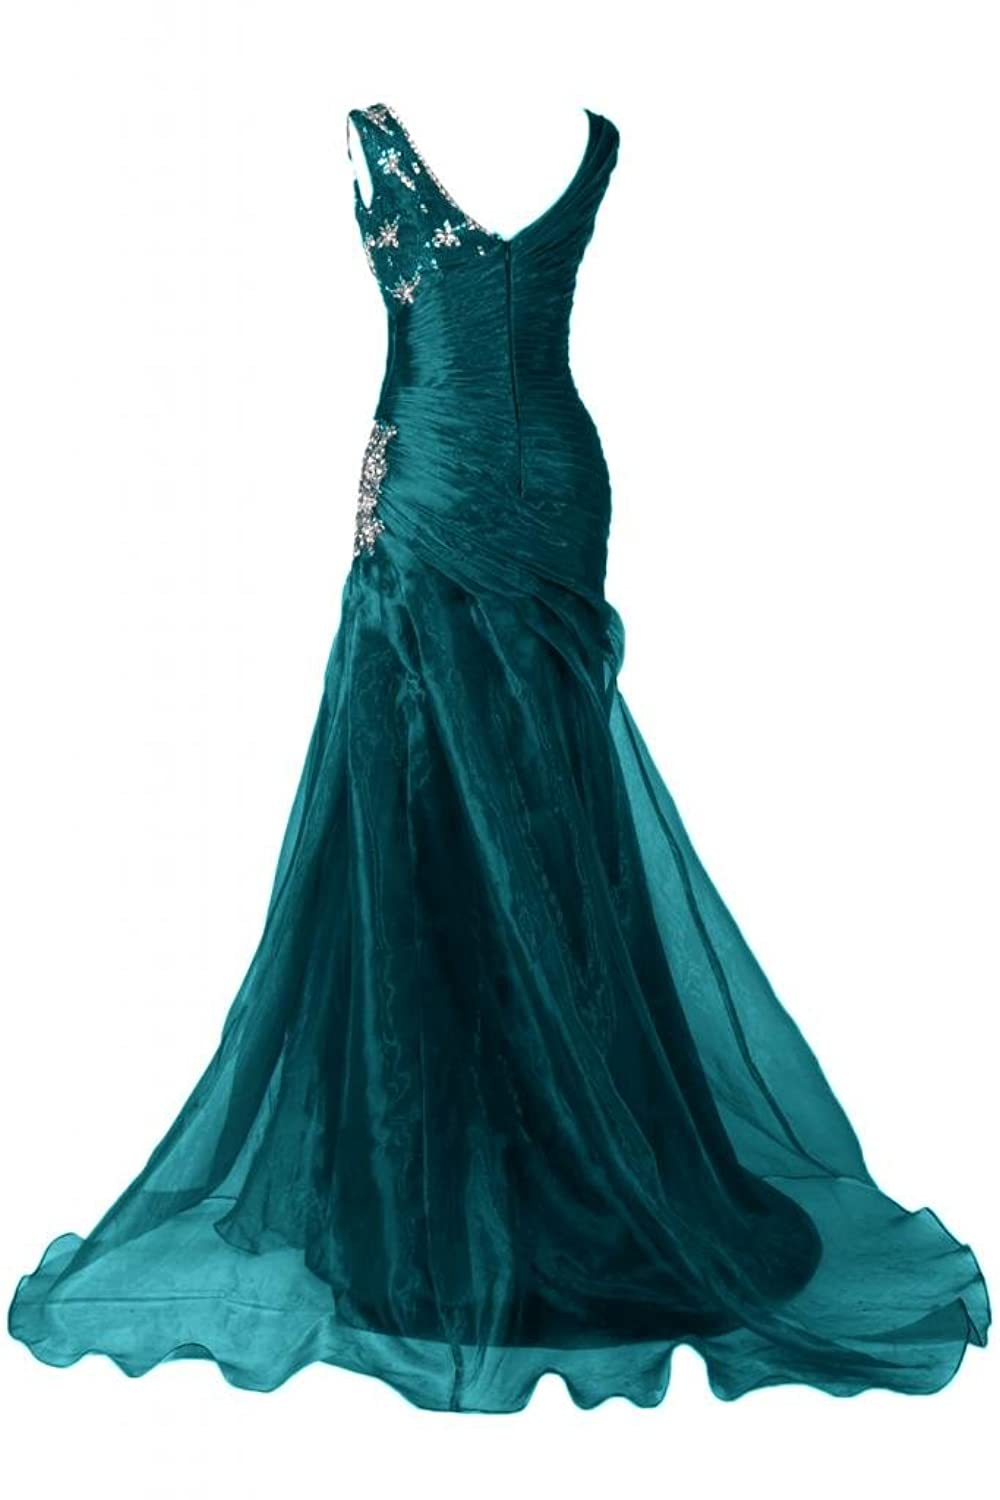 Sunvary Charming V-neck Prom Dresses Organza Evening Party Gowns Maxi Pageant Dress